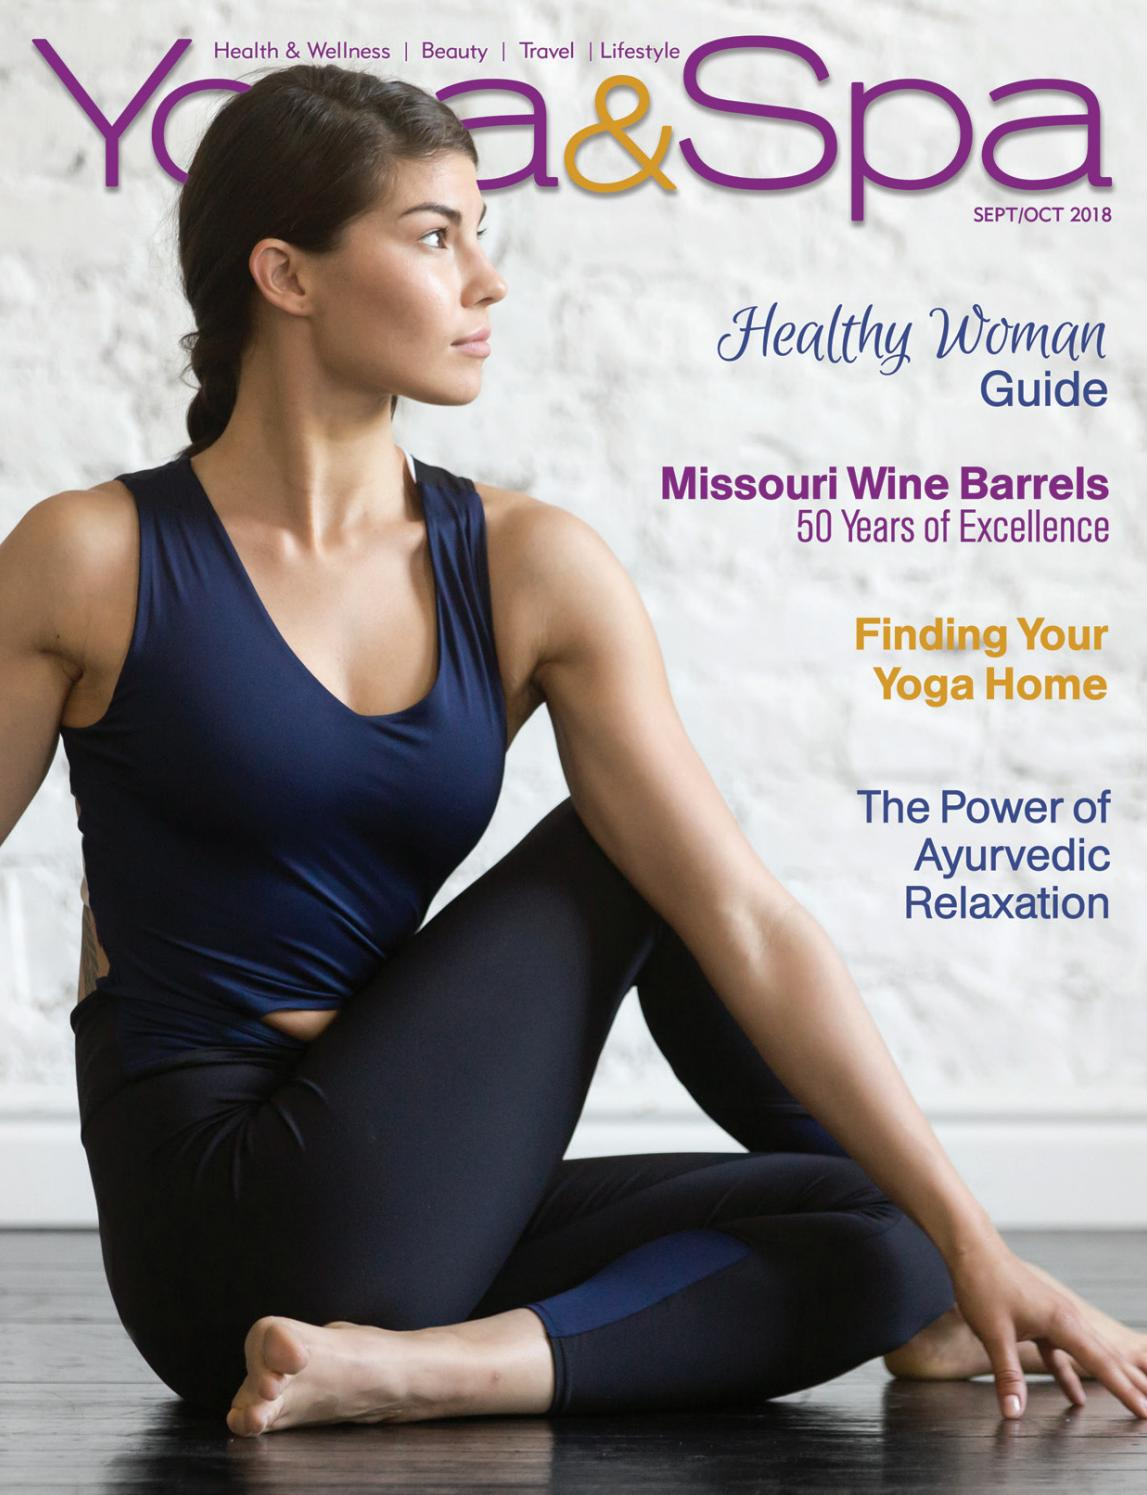 be15e173d Yoga & Spa Magazine Sept/Oct 2018 Healthy Woman Issue by Yoga & Spa  Magazine - issuu